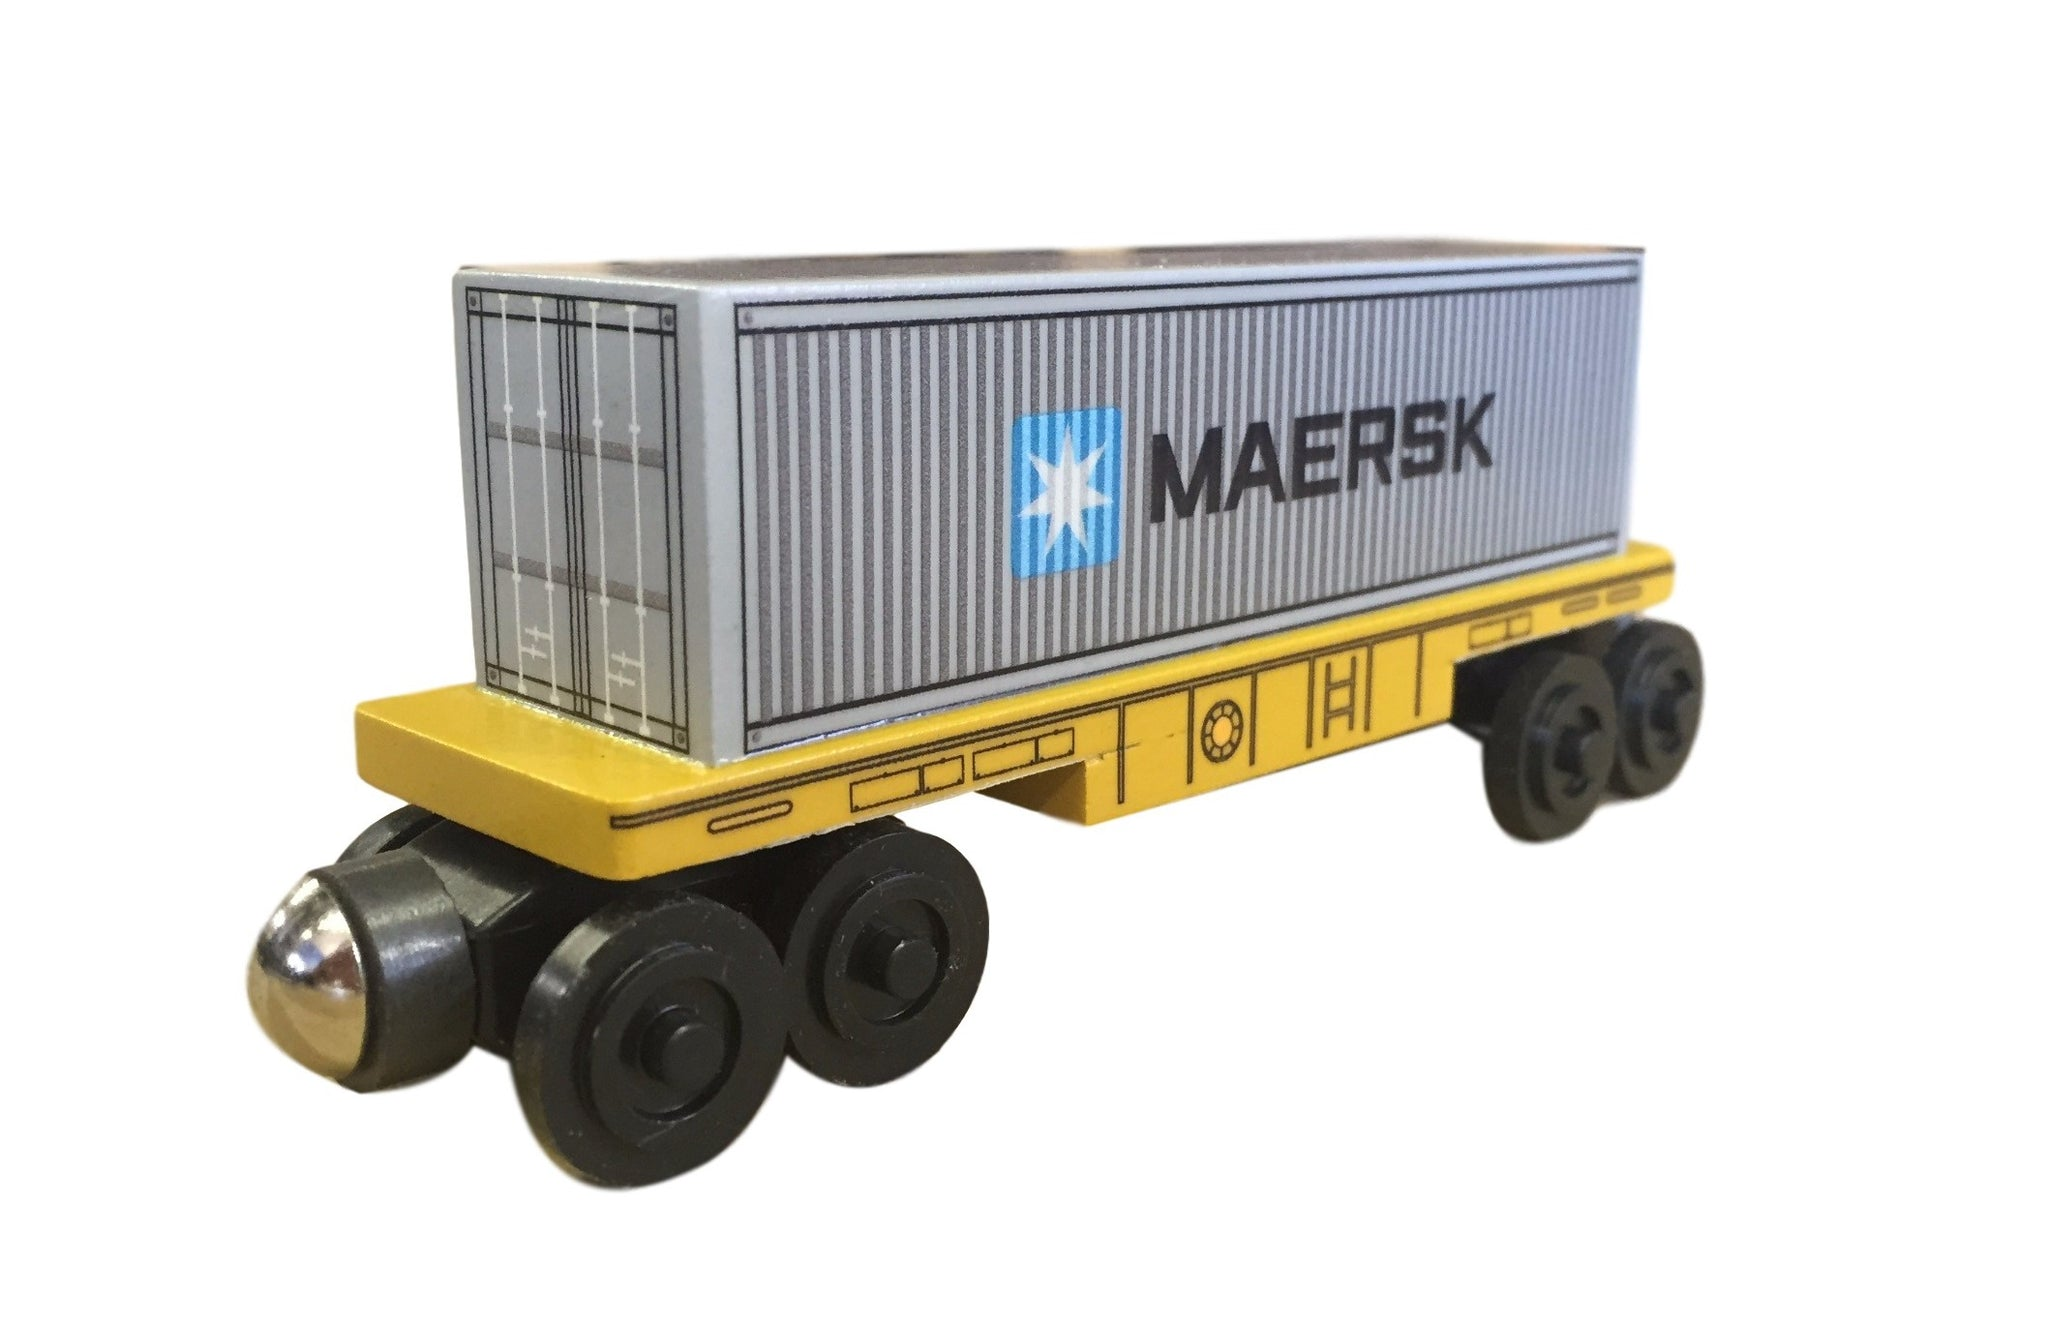 Singlestack Maersk toy train - European